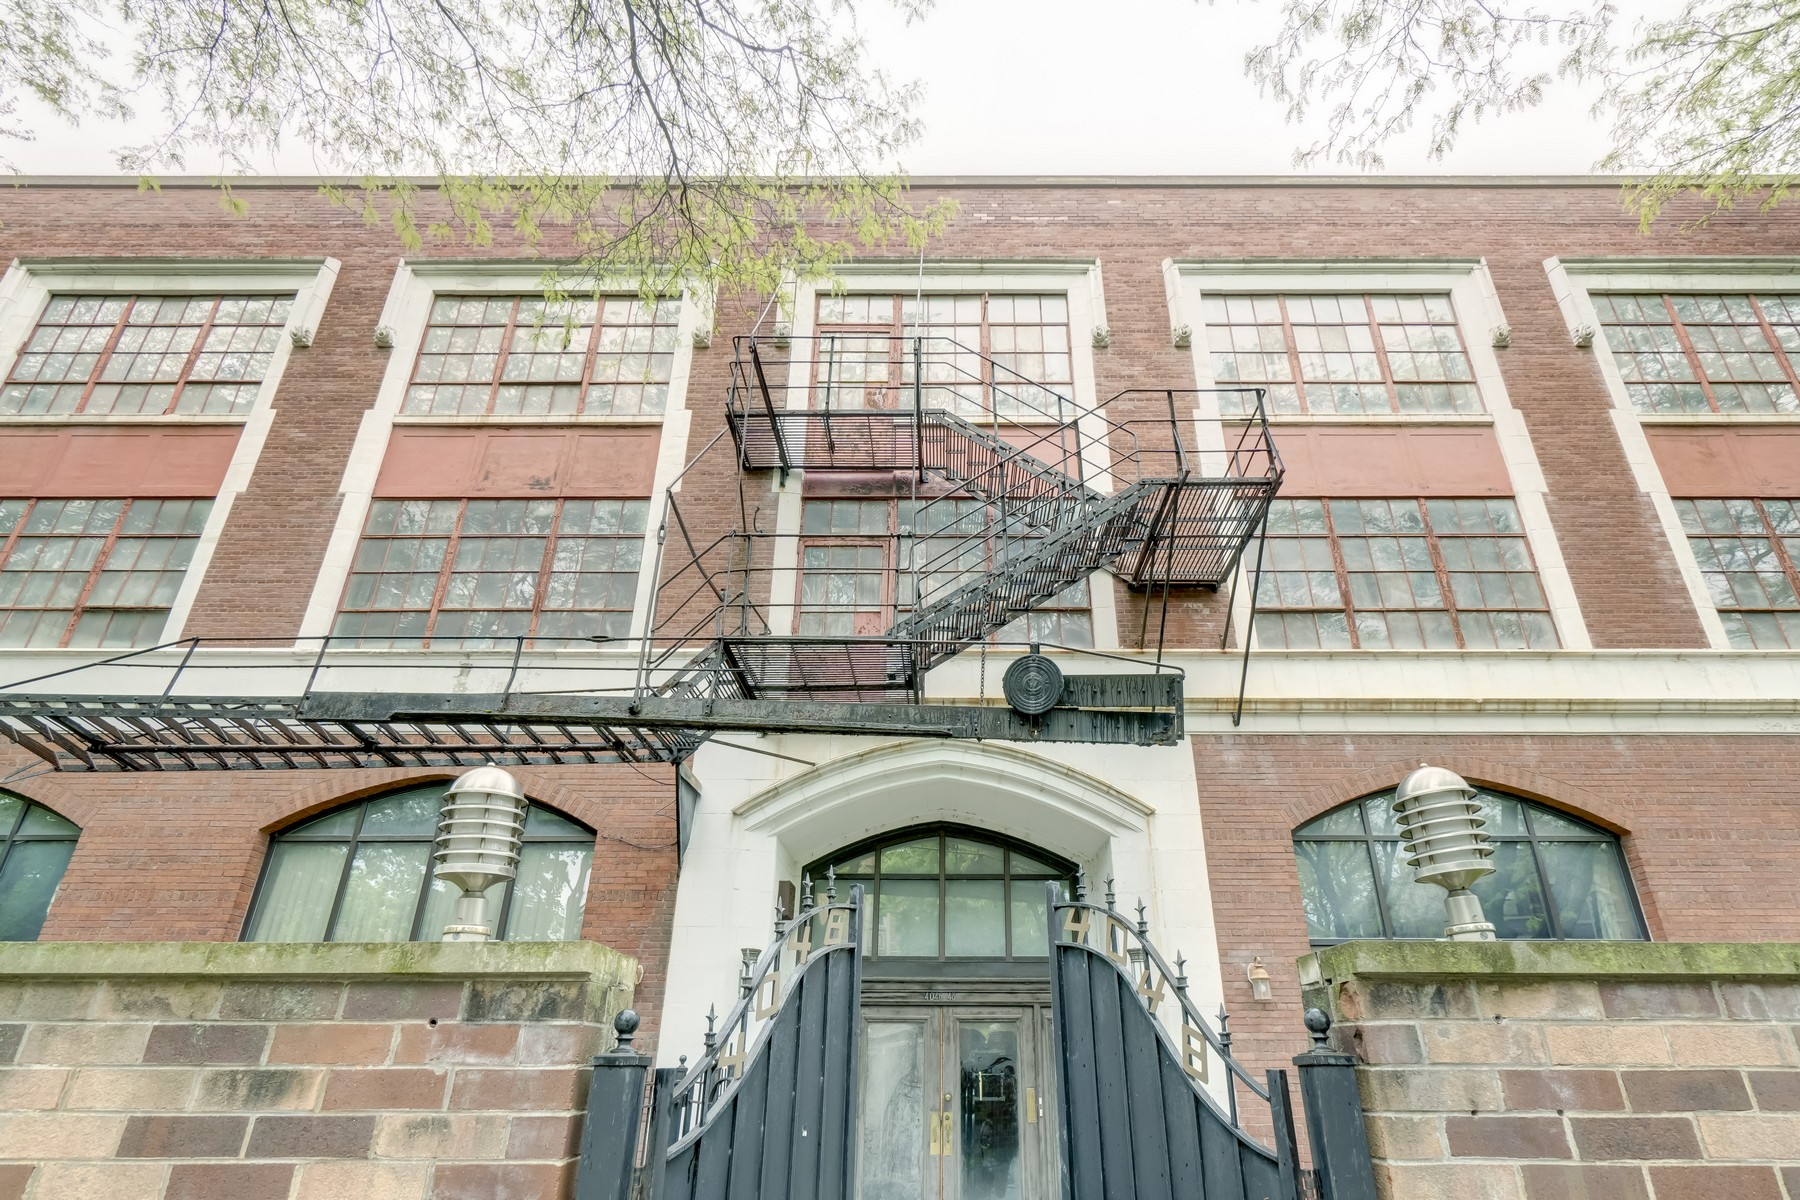 Land for Sale at Impressive Original 3-Story Loft Building 4046 N Hermitage Avenue Chicago, Illinois, 60613 United States